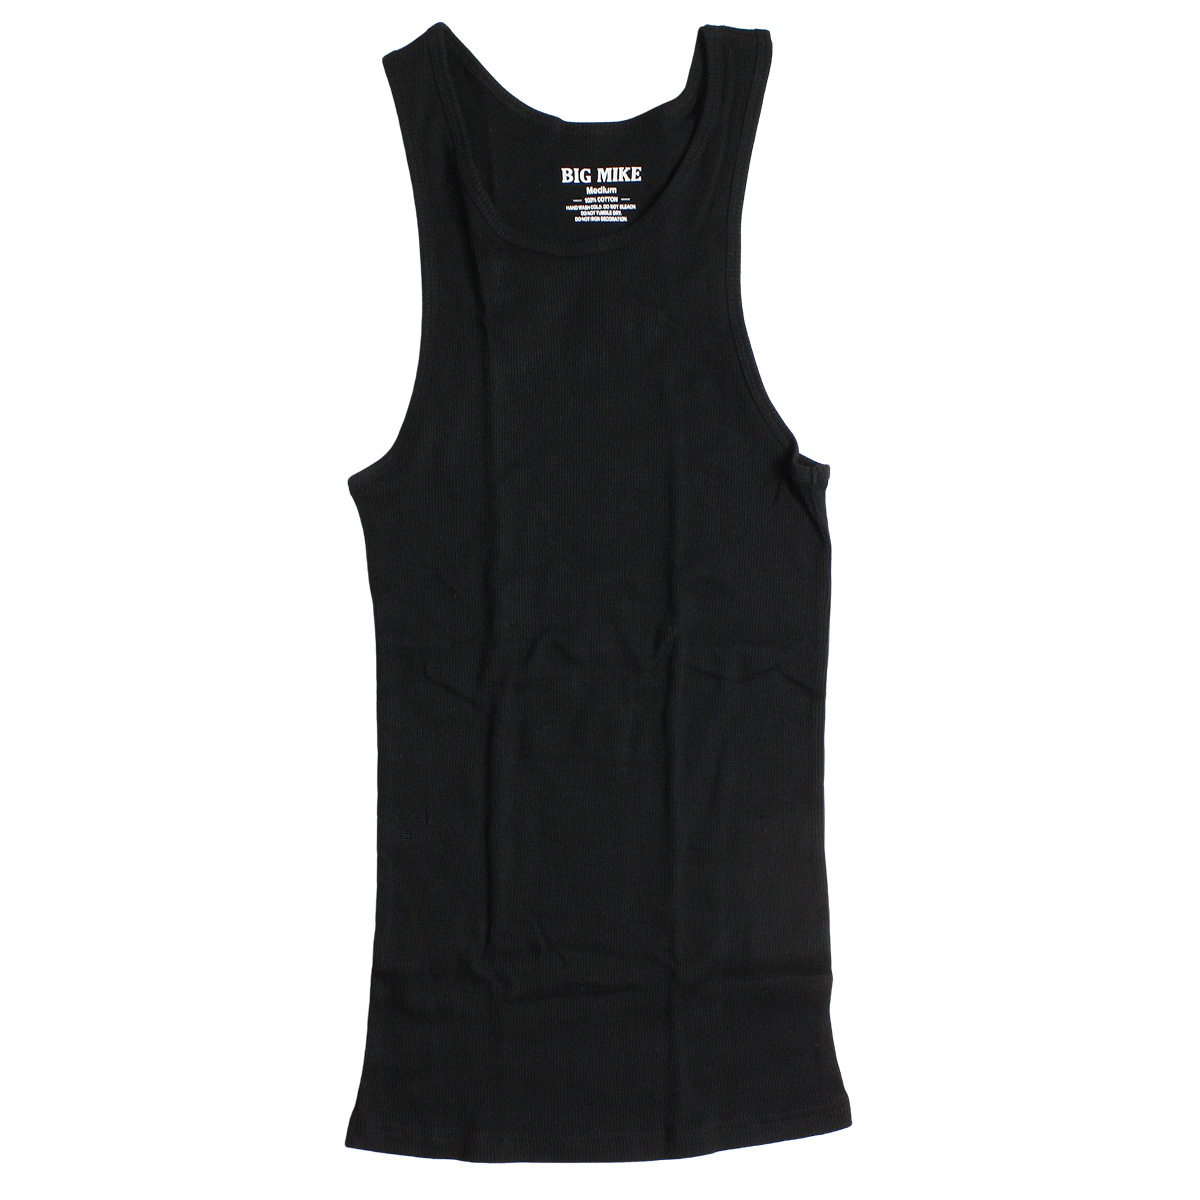 BIG MIKE ビッグマイク 2PACK TANKTOP